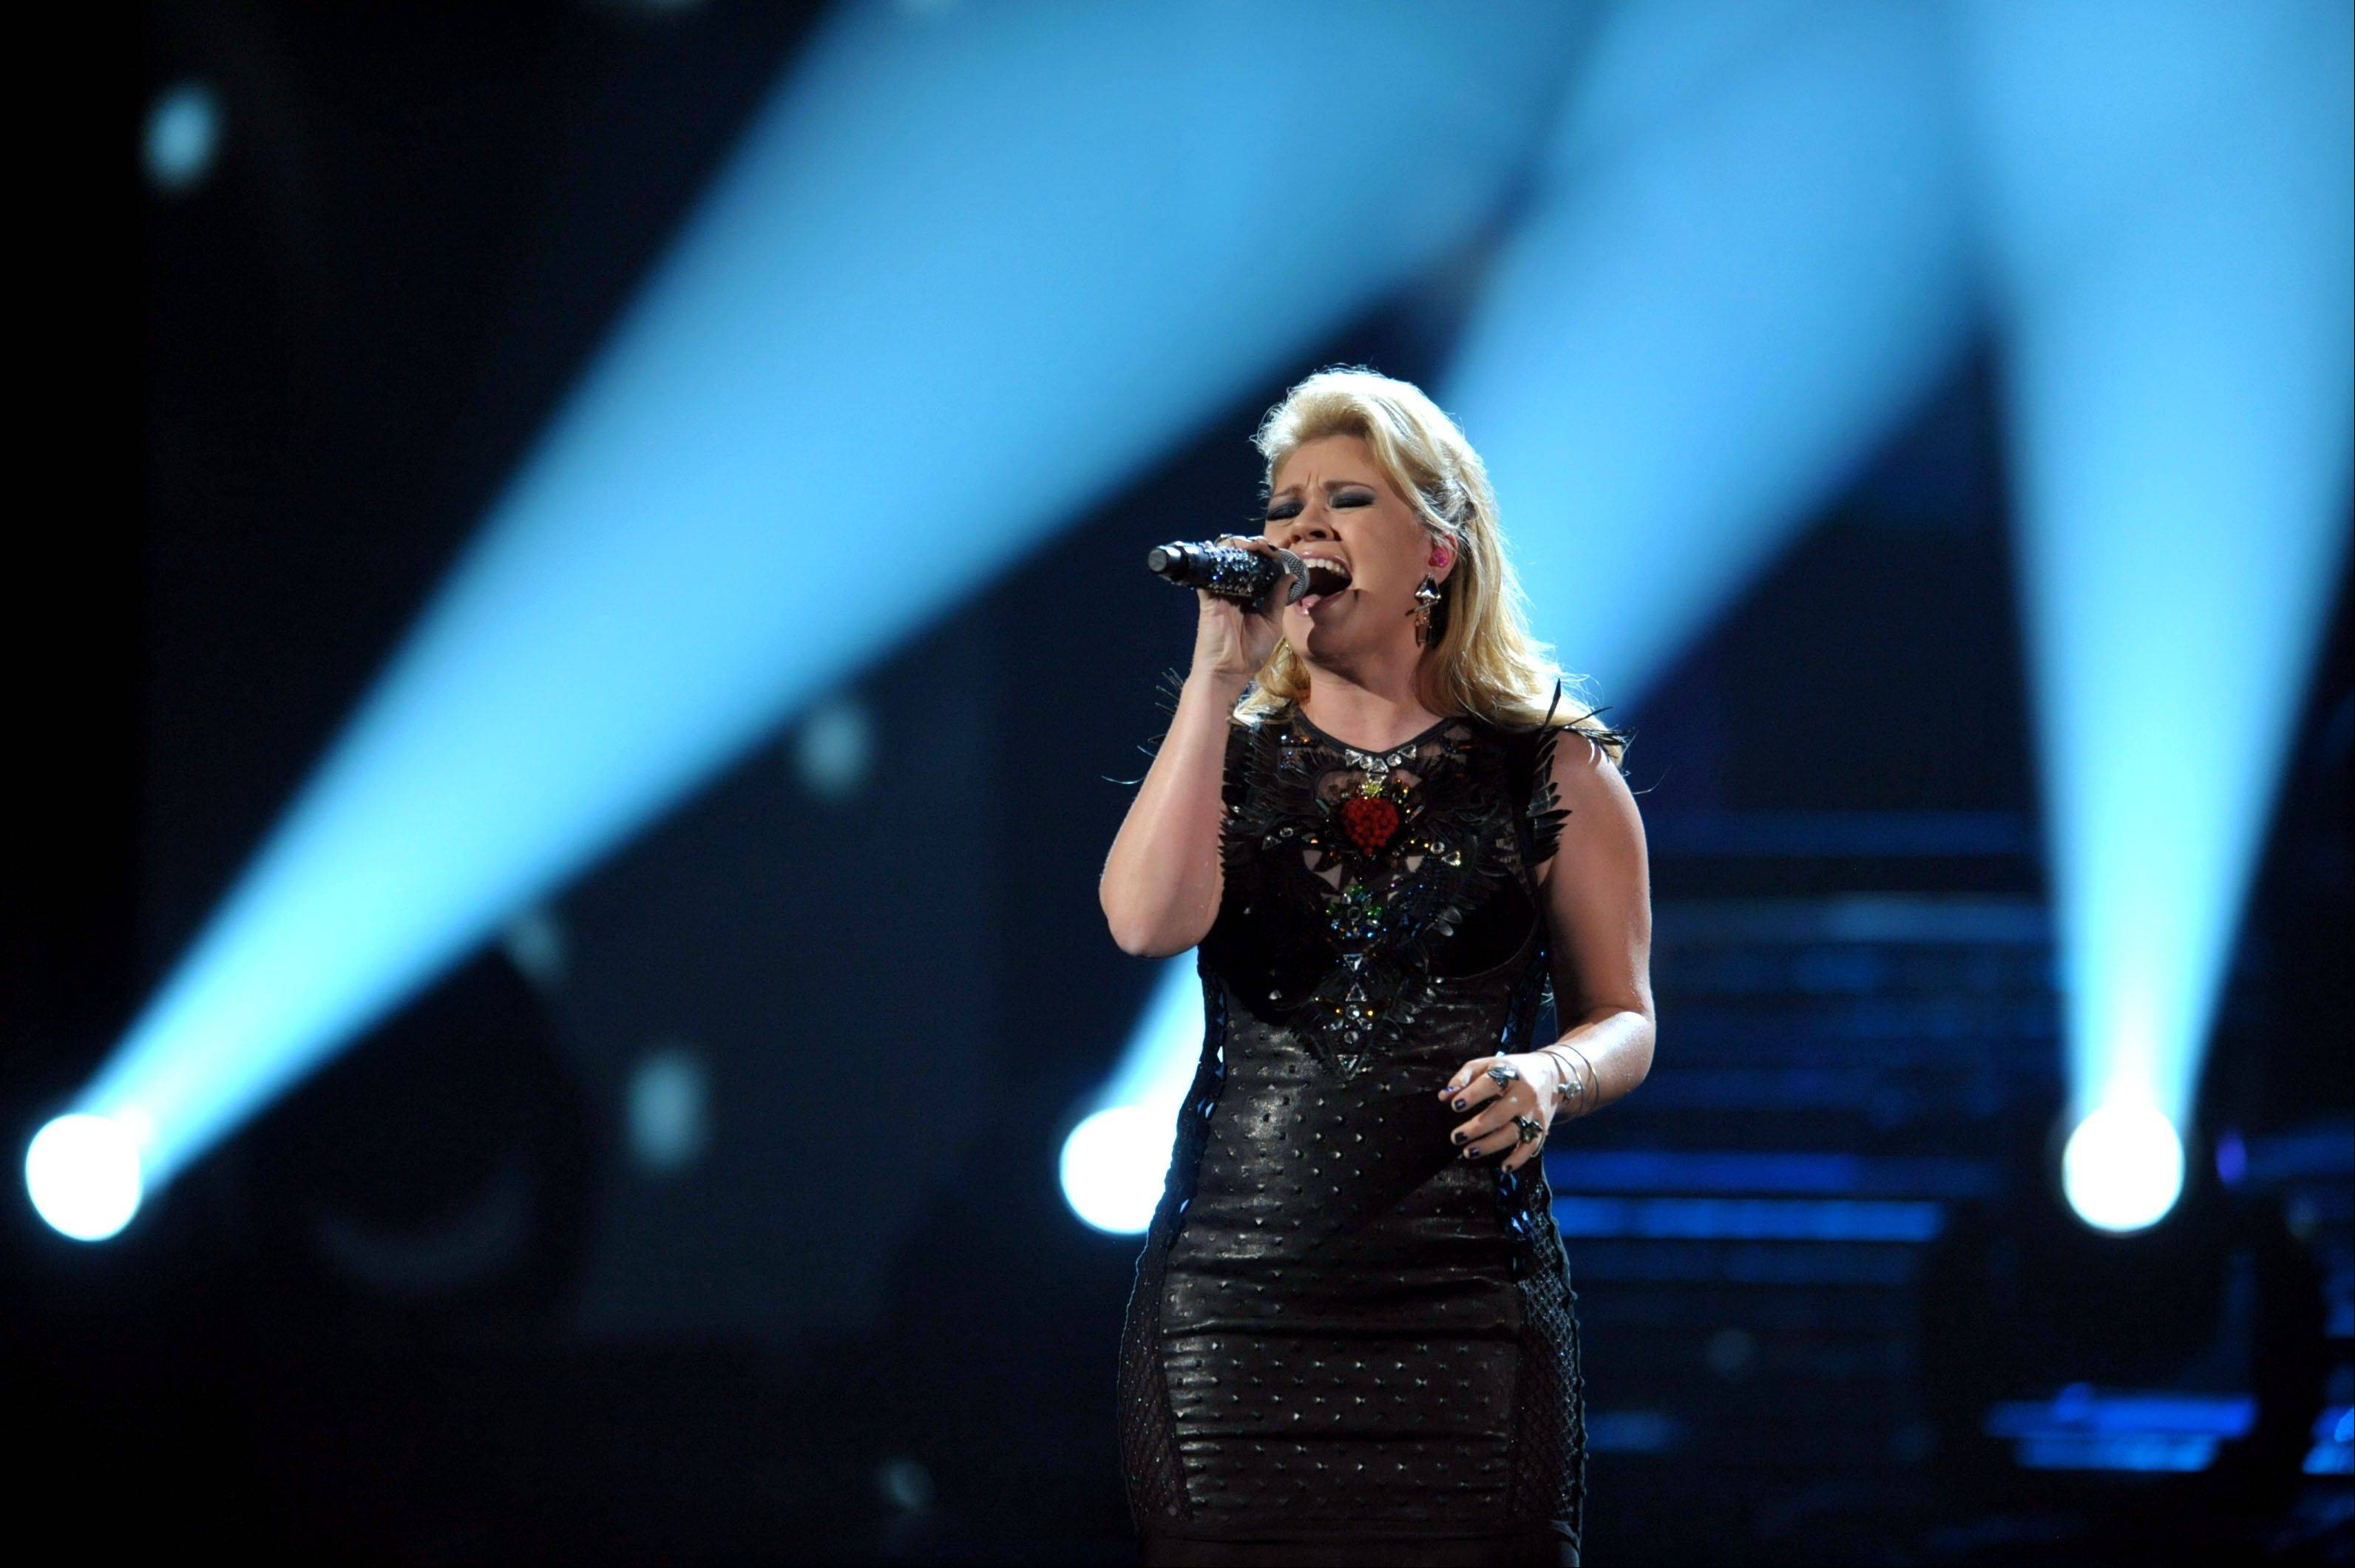 Kelly Clarkson fun. are just two of the acts who will perform during the upcoming inaugural festivities, which also includes Beyonc�, James Taylor, Stevie Wonder, Katy Perry and dozens of others.